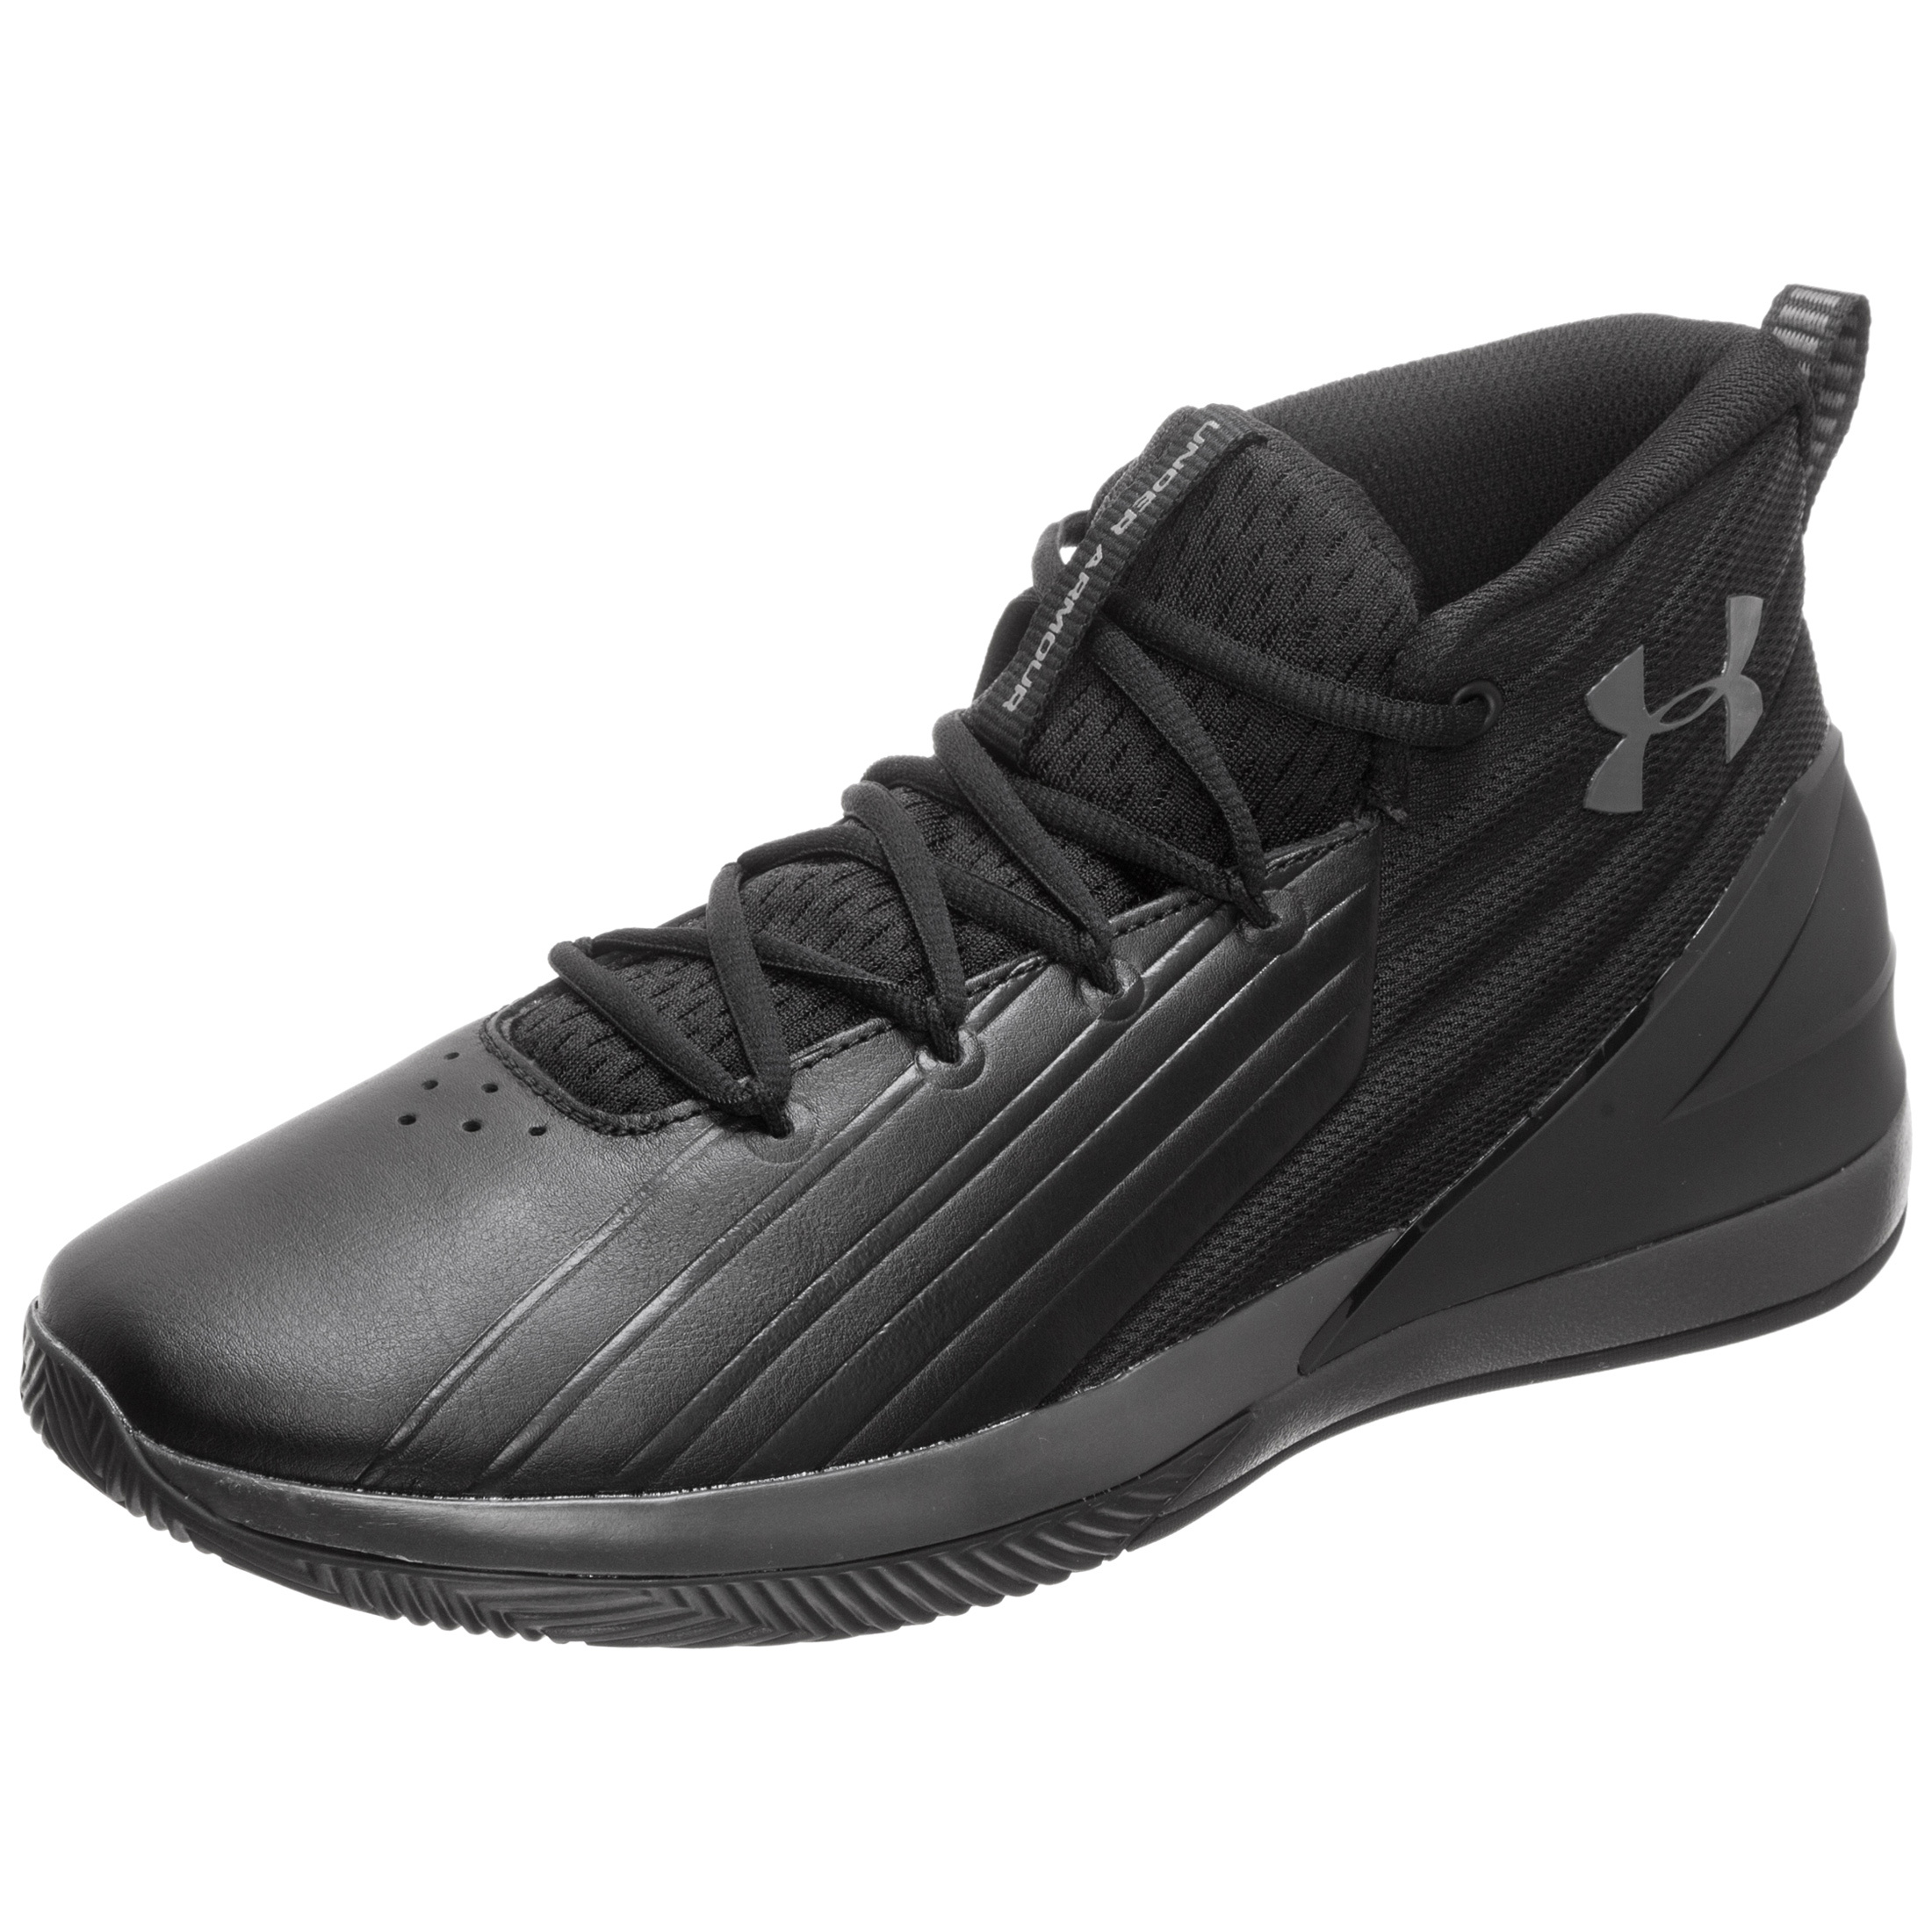 new products 40b54 94ba4 Under Armour Men s UA Lockdown 3 Basketball Shoes   3020622-001   FOOTY.COM